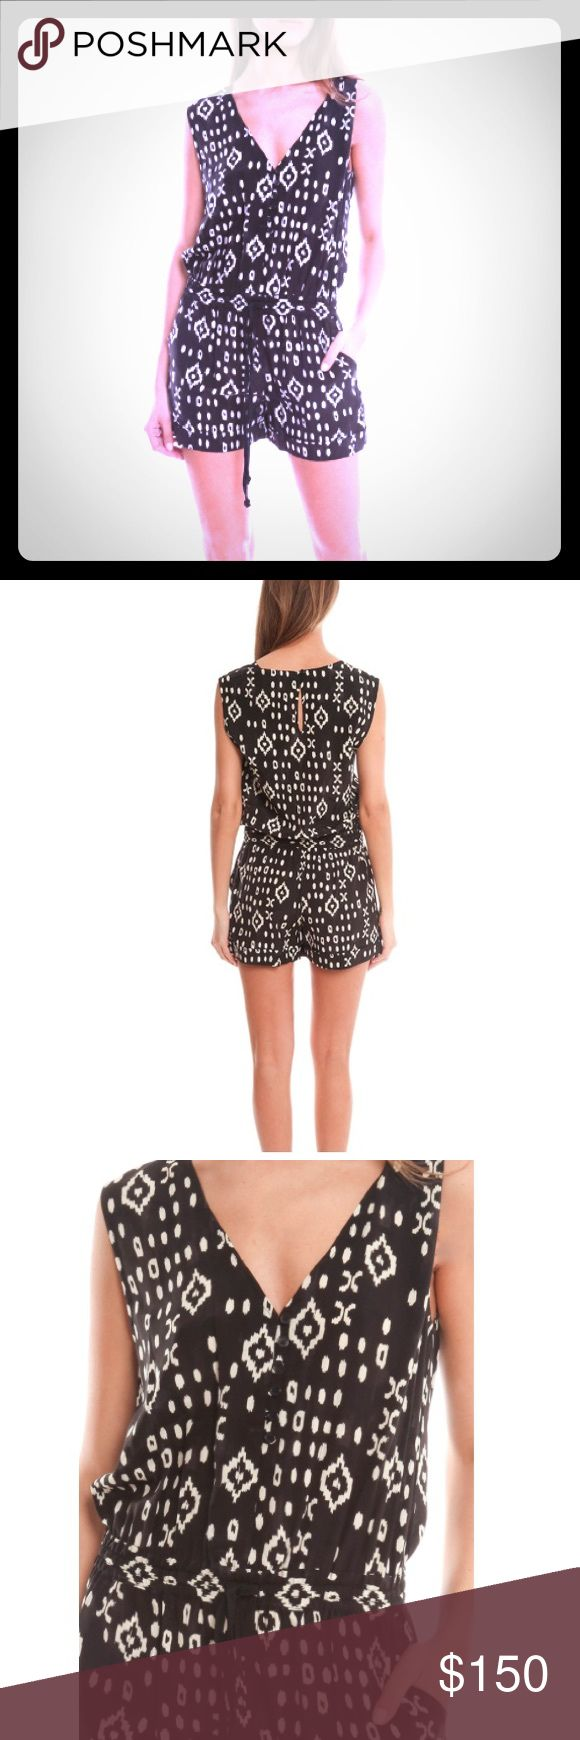 """Pam& Gela 100% silk Romper M Pam& Gela 100% silk Romper size M Retail $325 NWT   This printed romper is crafted in 100% silk making it luxurious and elegant for any occasion.   - Color: Black/White  - 100% Silk  - Dry Clean Only   * Model is 5'9"""" wearing size S Pam & Gela Pants Jumpsuits & Rompers"""